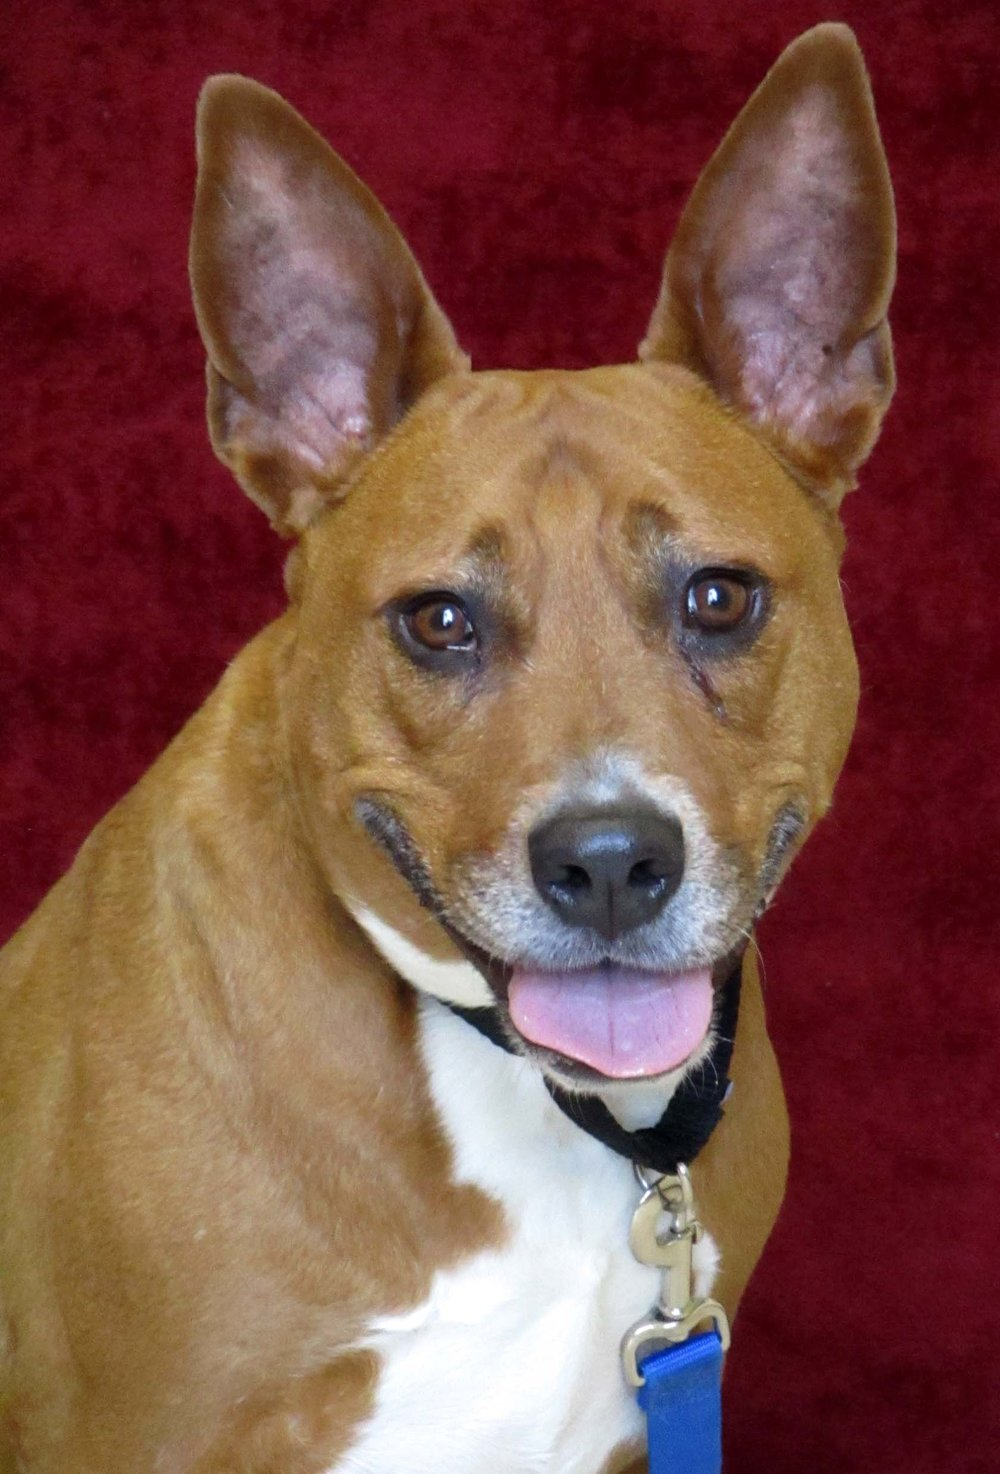 Zoey is a 5 year old Pitbull Terrier Mix. She is a cuddle bug after you earn her trust.  HAWS staff will tell you, she has the best kisses in the kennel. She likes to go on slow walks in the park, but will also lounge all day.